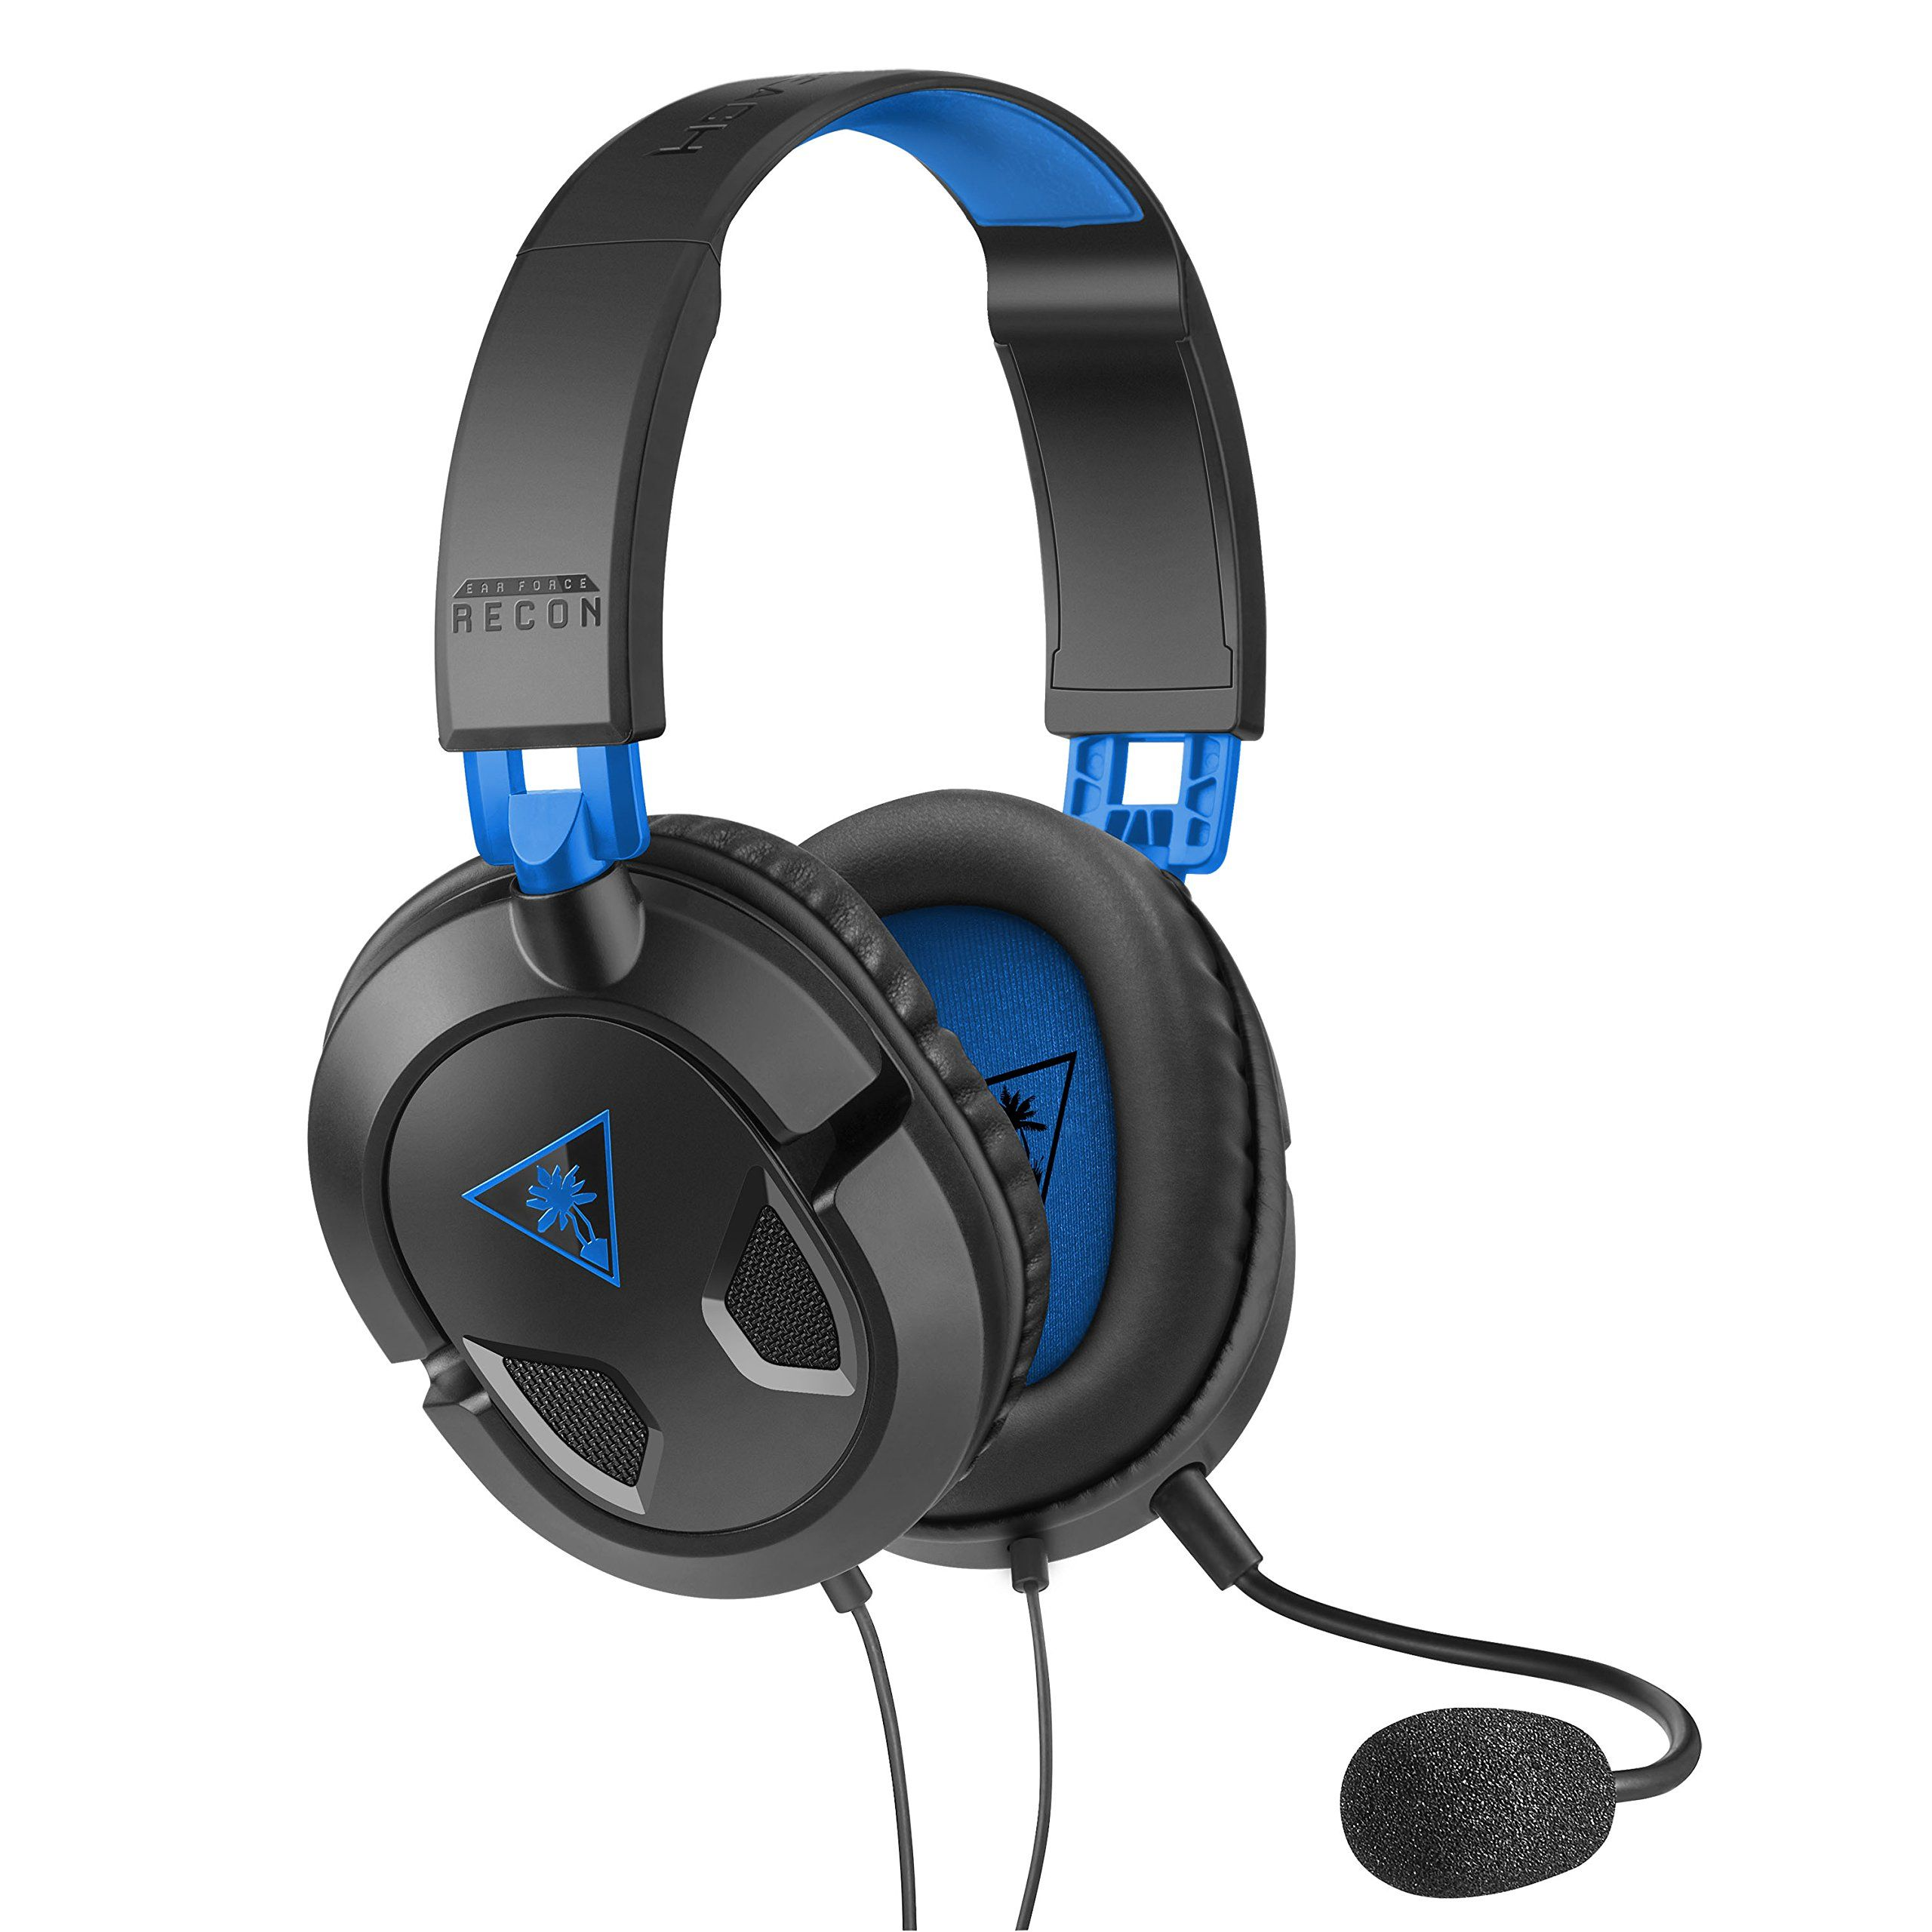 4b5a6a313f9 Turtle Beach - Ear Force Recon 50P Stereo Gaming Headset - PS4 and Xbox One  (compatible w/ Xbox One controller w/ 3.5mm headset jack),#Recon, #Gaming,  ...